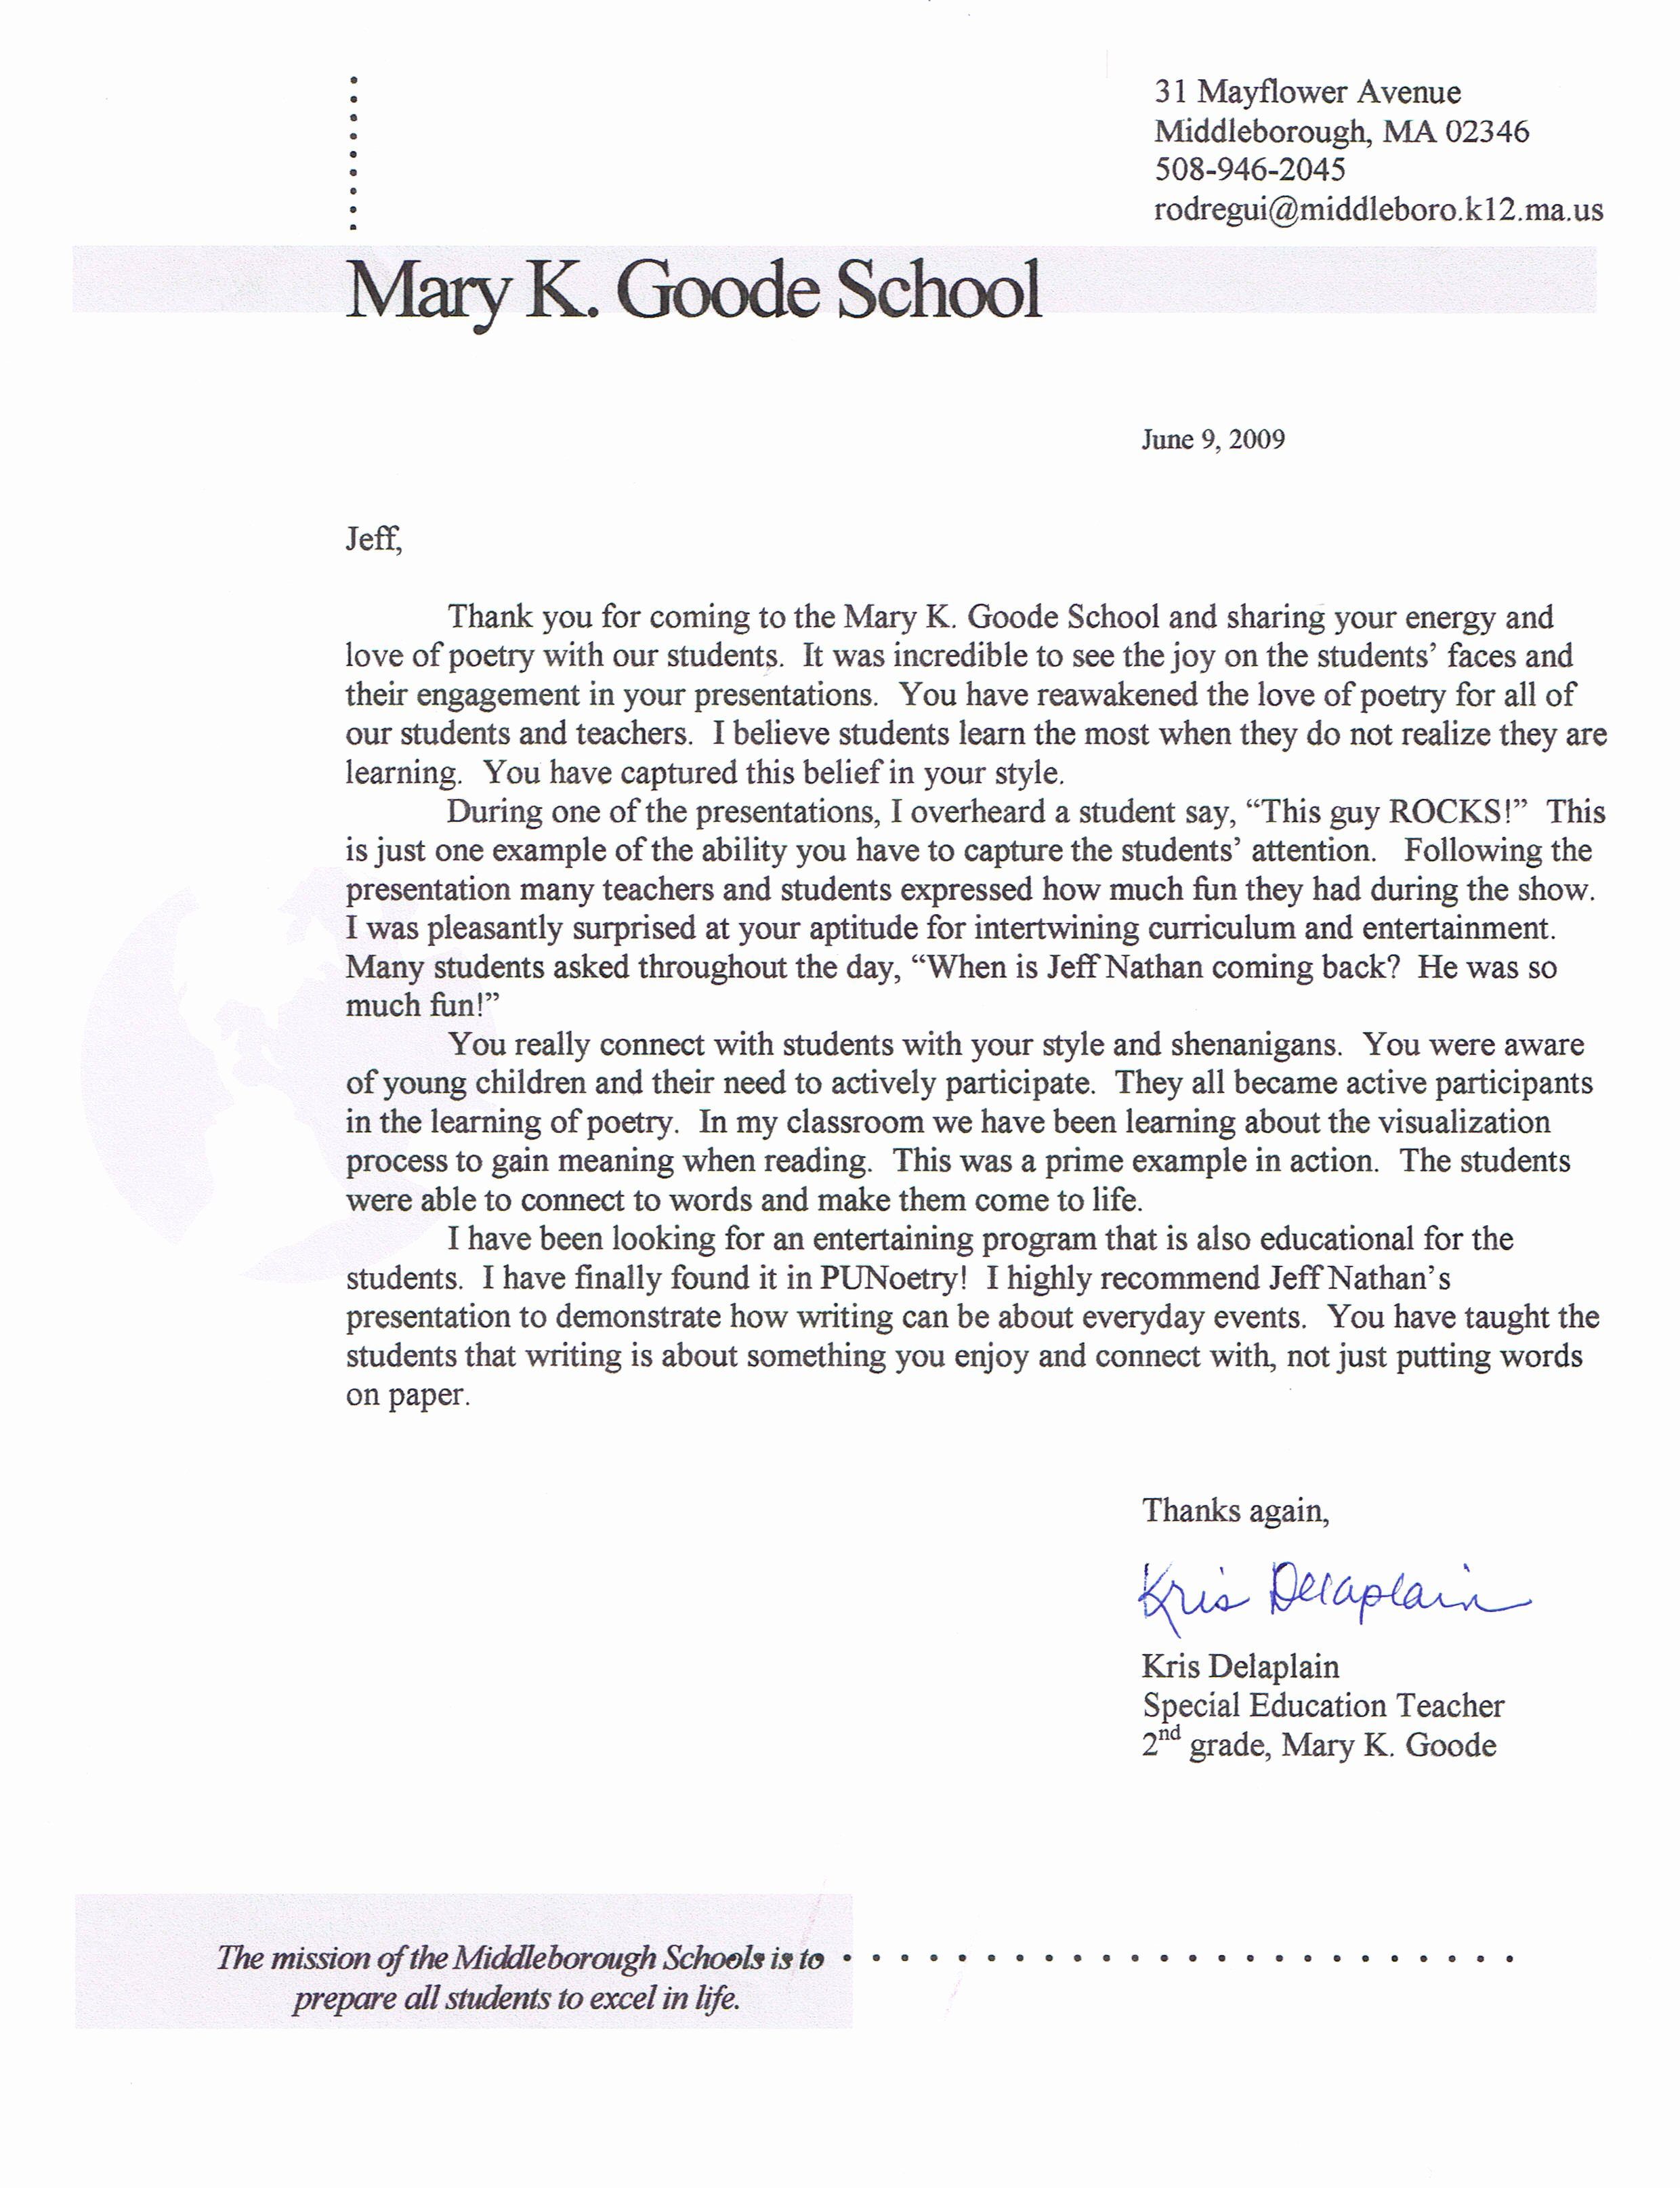 Buy Letter Of Recommendation Lovely Writing A Letter Of Re Mendation for A Student